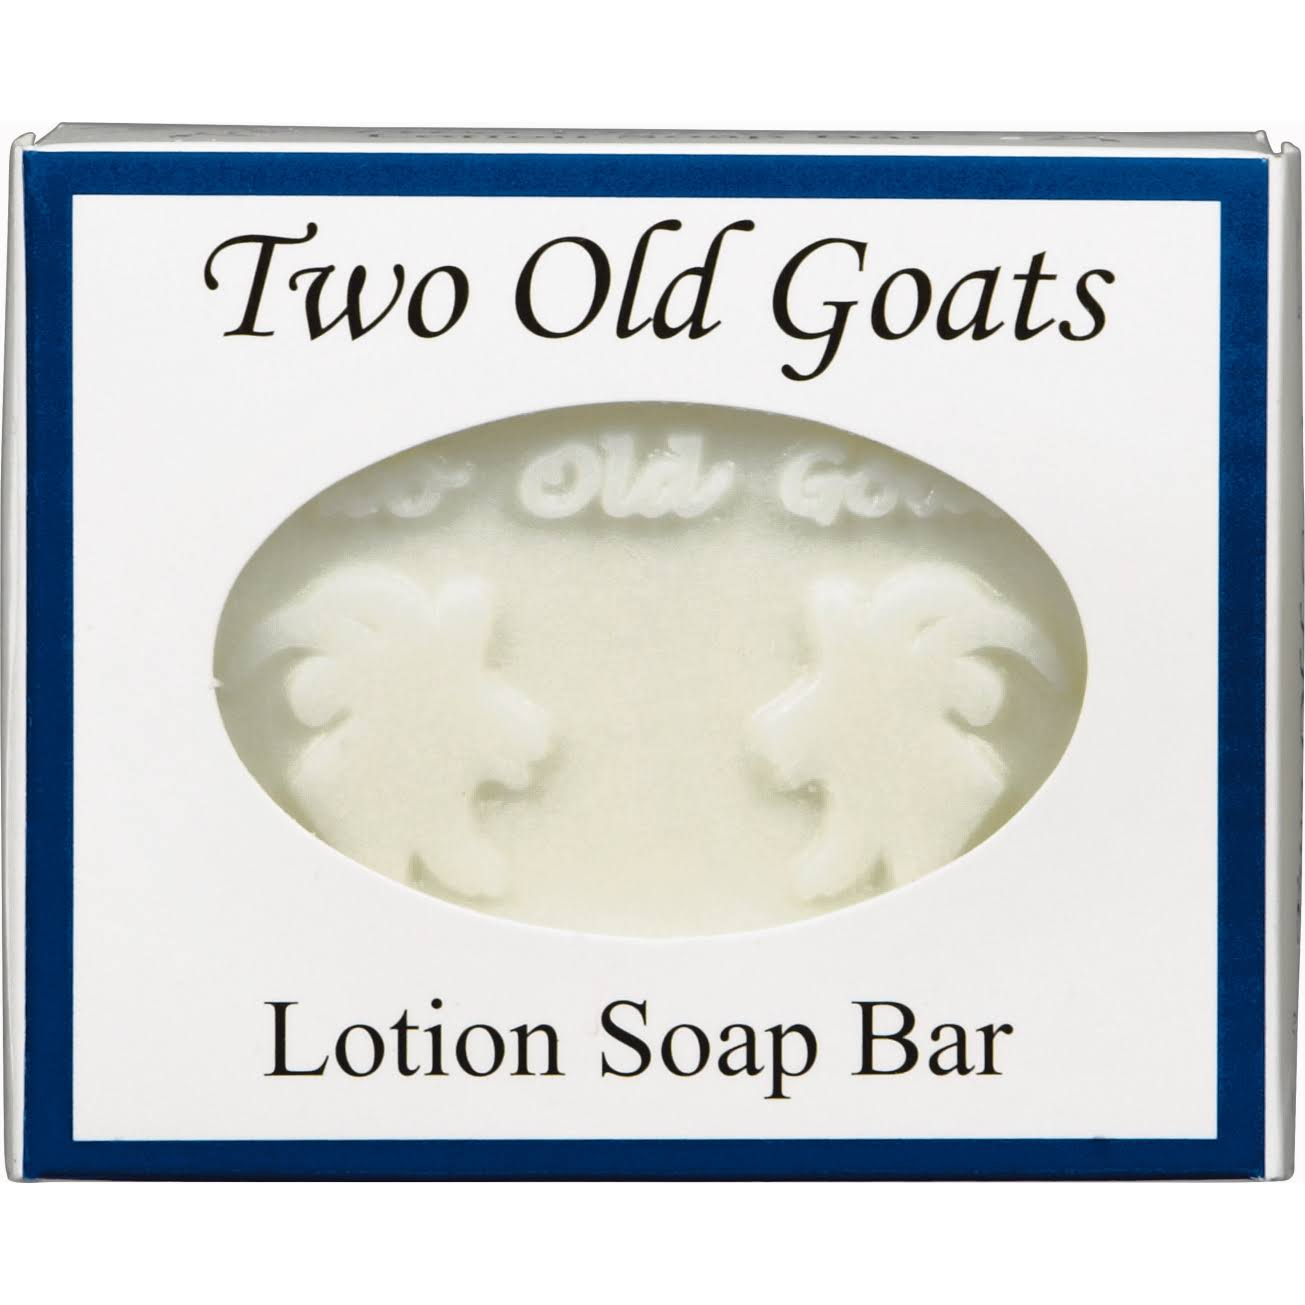 Two Old Goats Lotion Soap Bar - 4oz